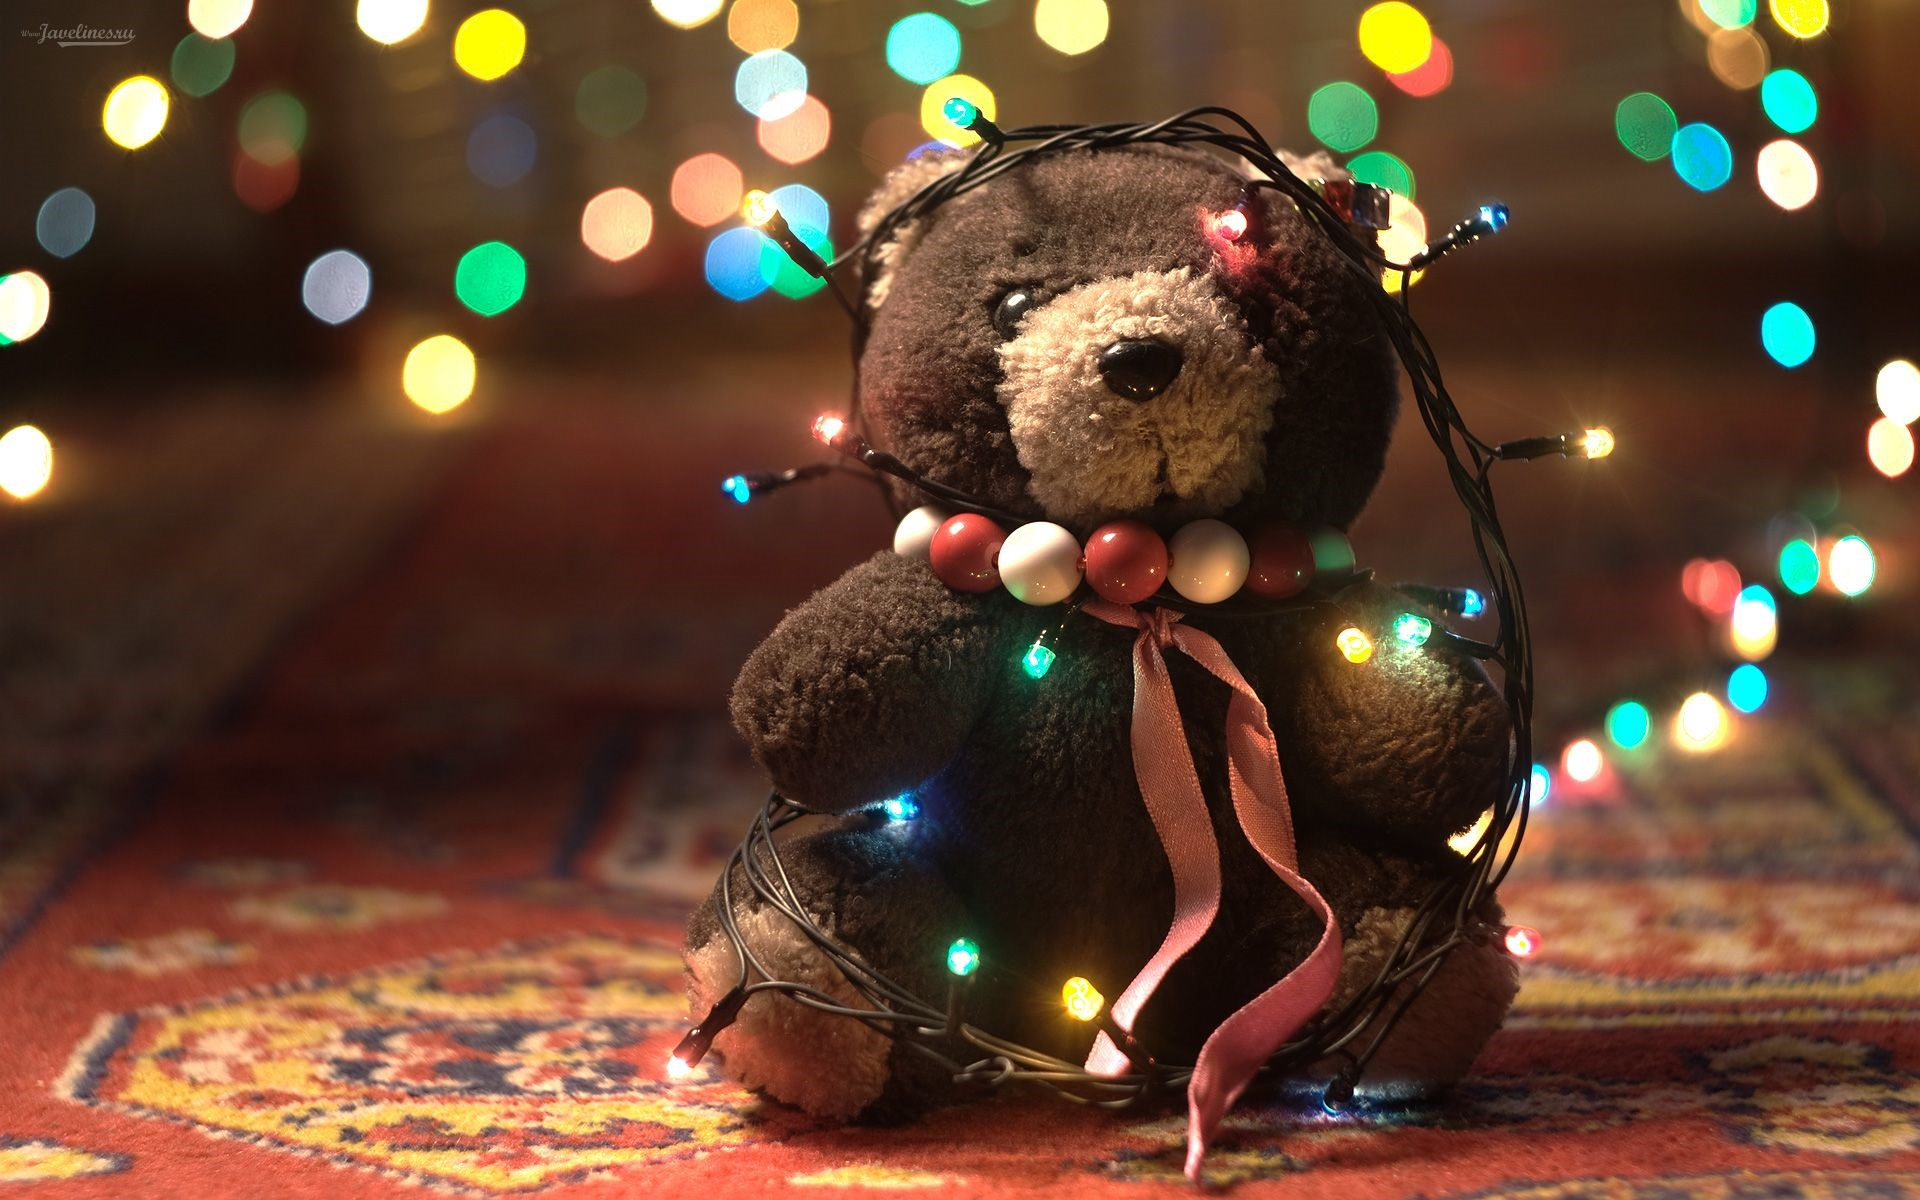 Wallpaper Teddy bear with Christmas lights